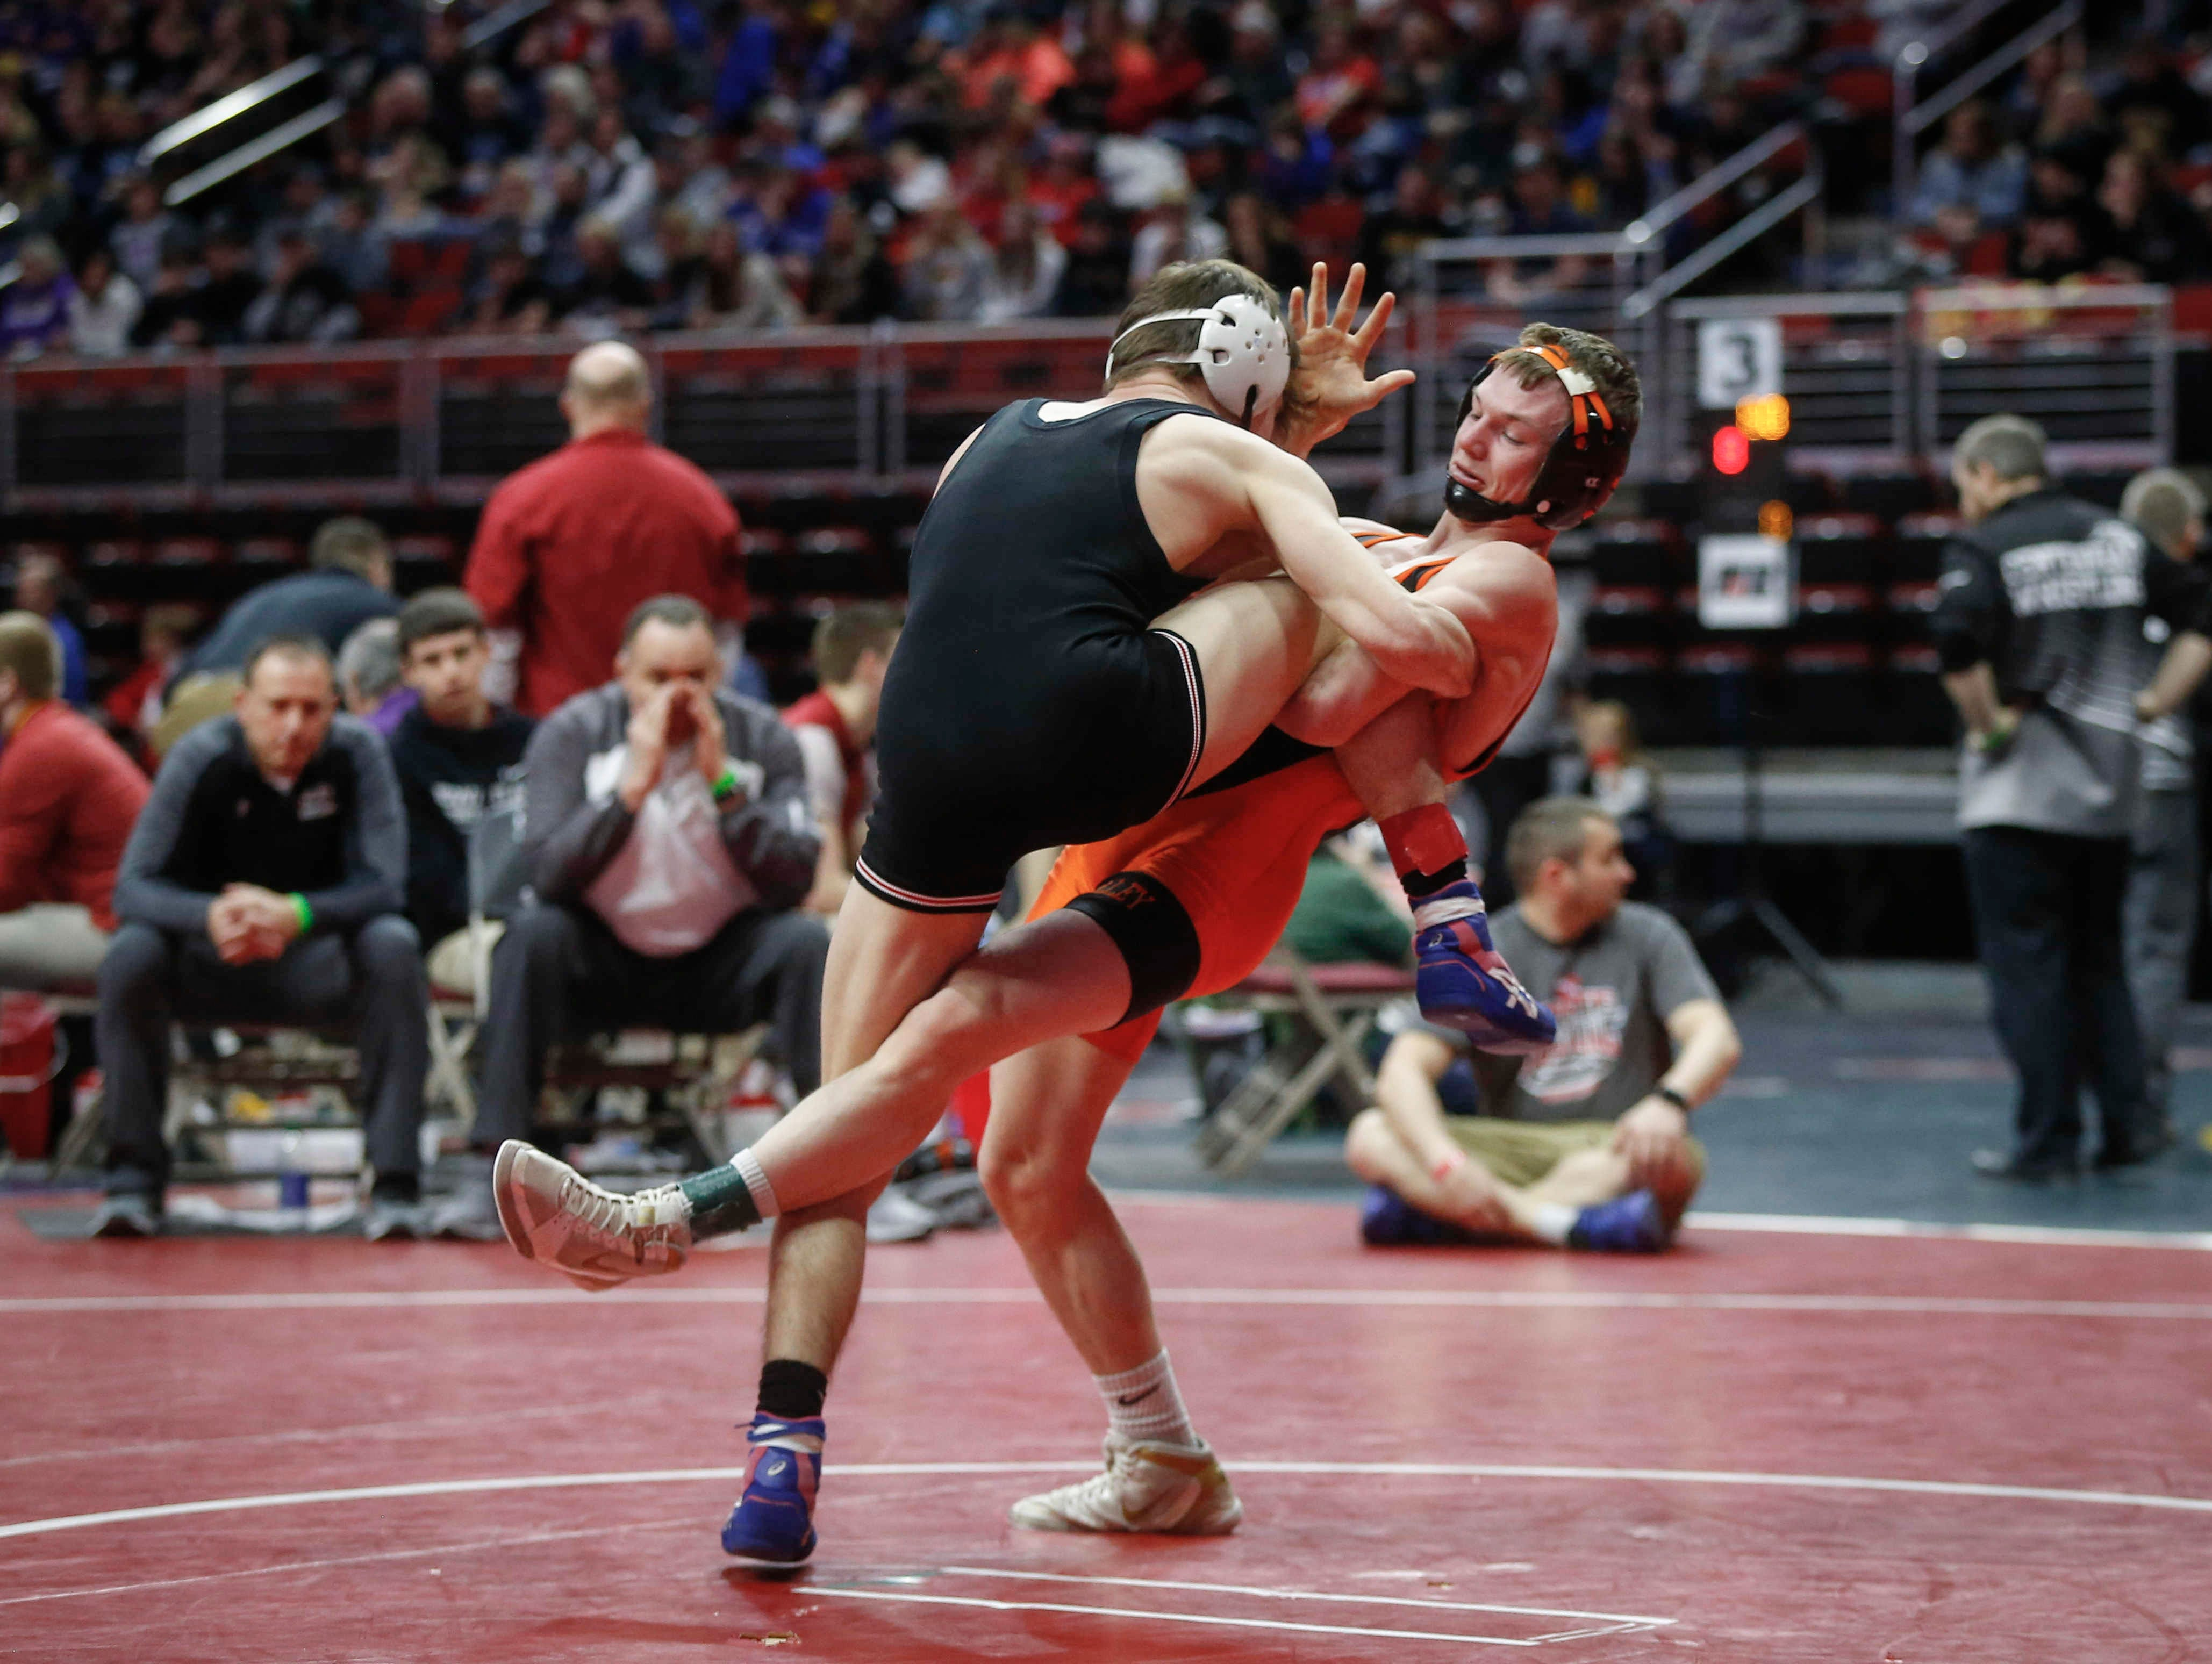 West Des Moines Valley's Nick Oldham trips up Fort Dodge's Brooks Cowell in their match at 126 pounds during the state wrestling quarterfinals on Friday, Feb. 15, 2019, at Wells Fargo Arena in Des Moines.